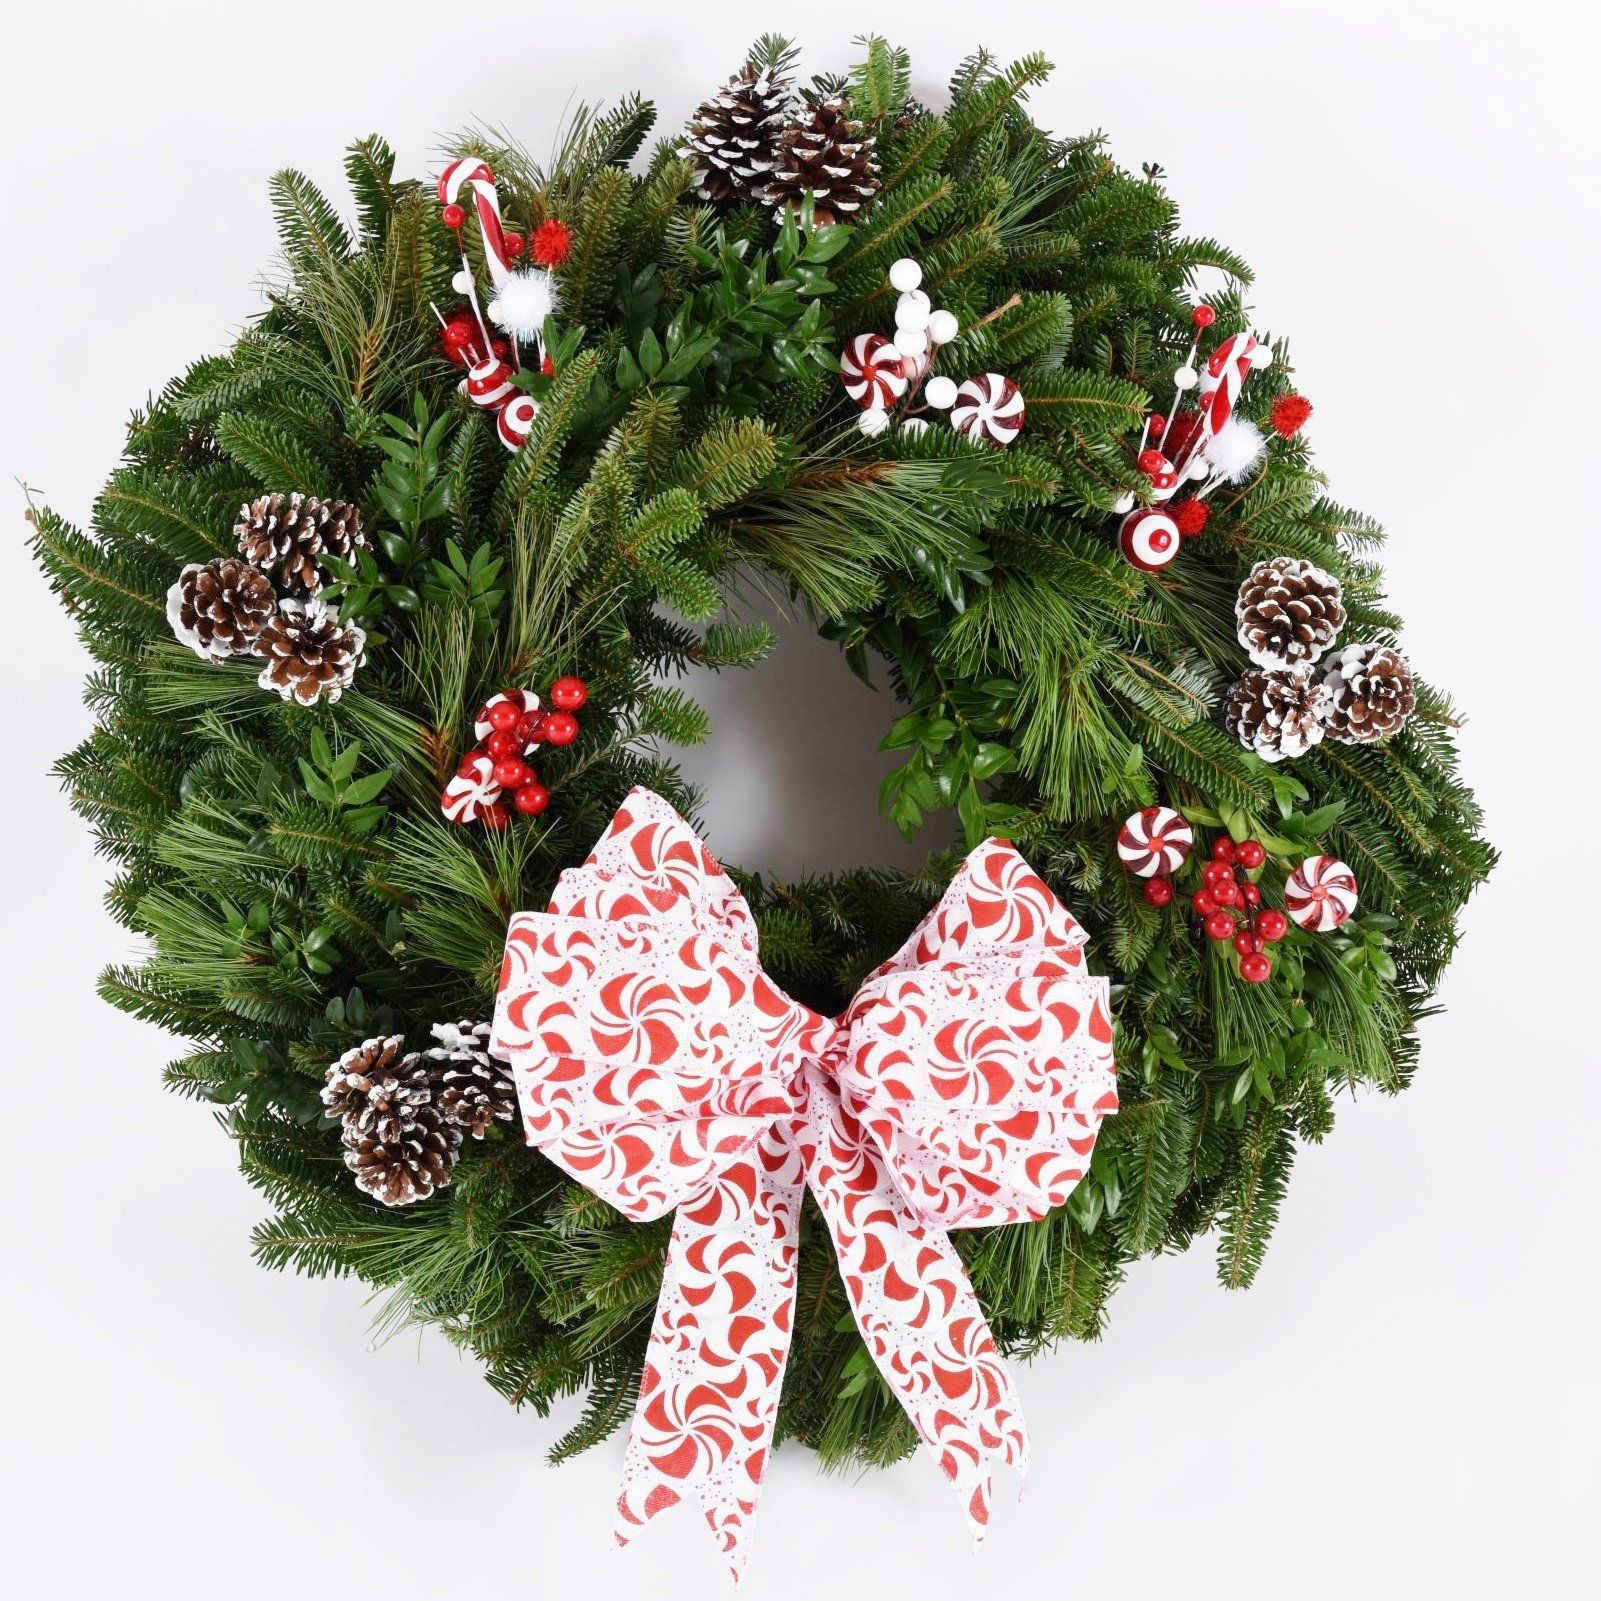 Holiday Peppermint & Candy Canes Wreath Kit Wreath